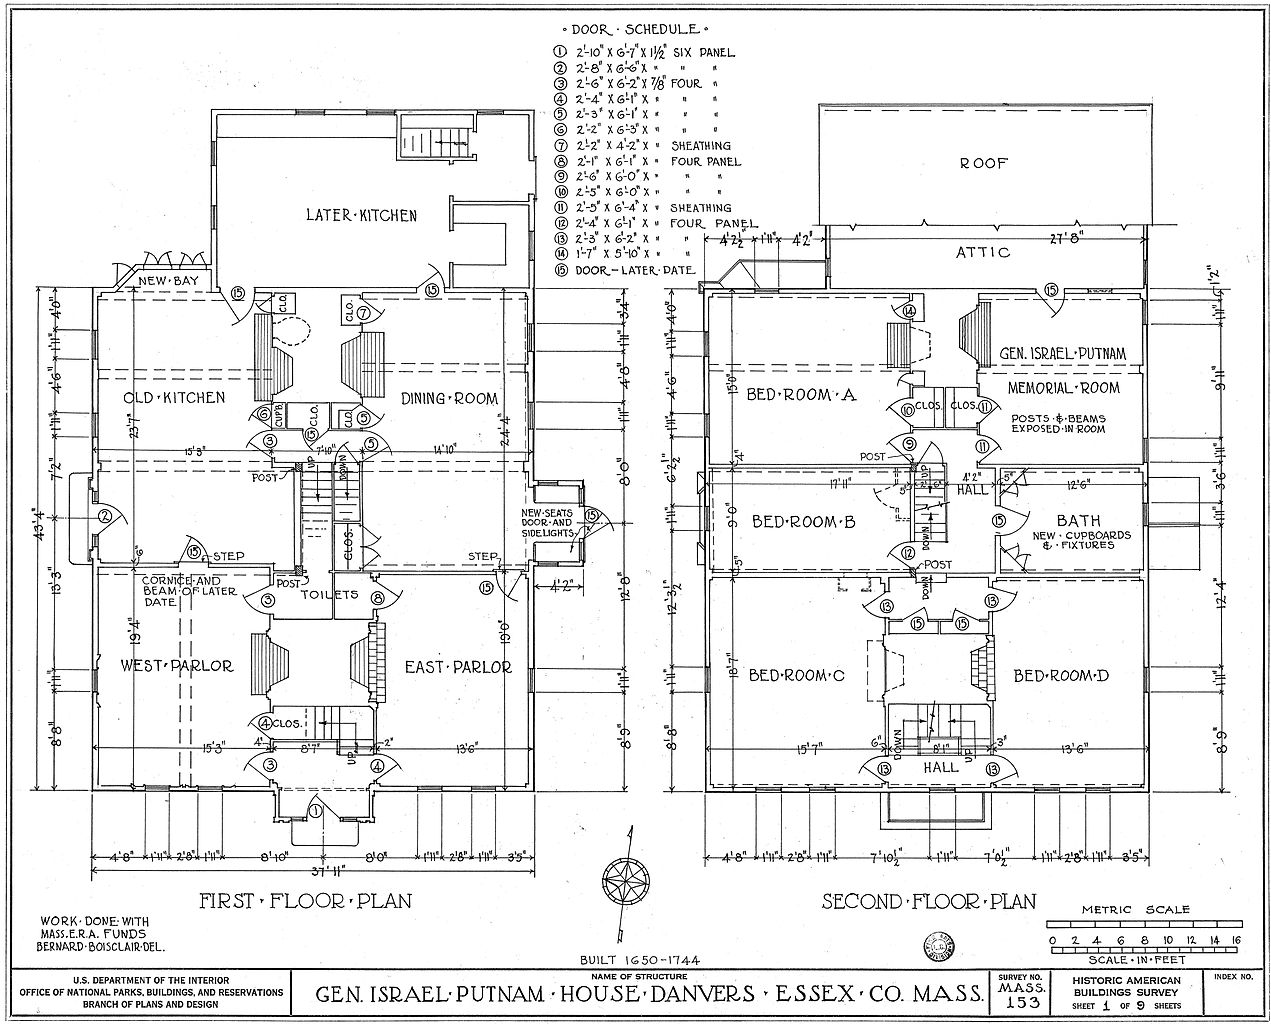 File Putnam House floor plans Wikimedia mons